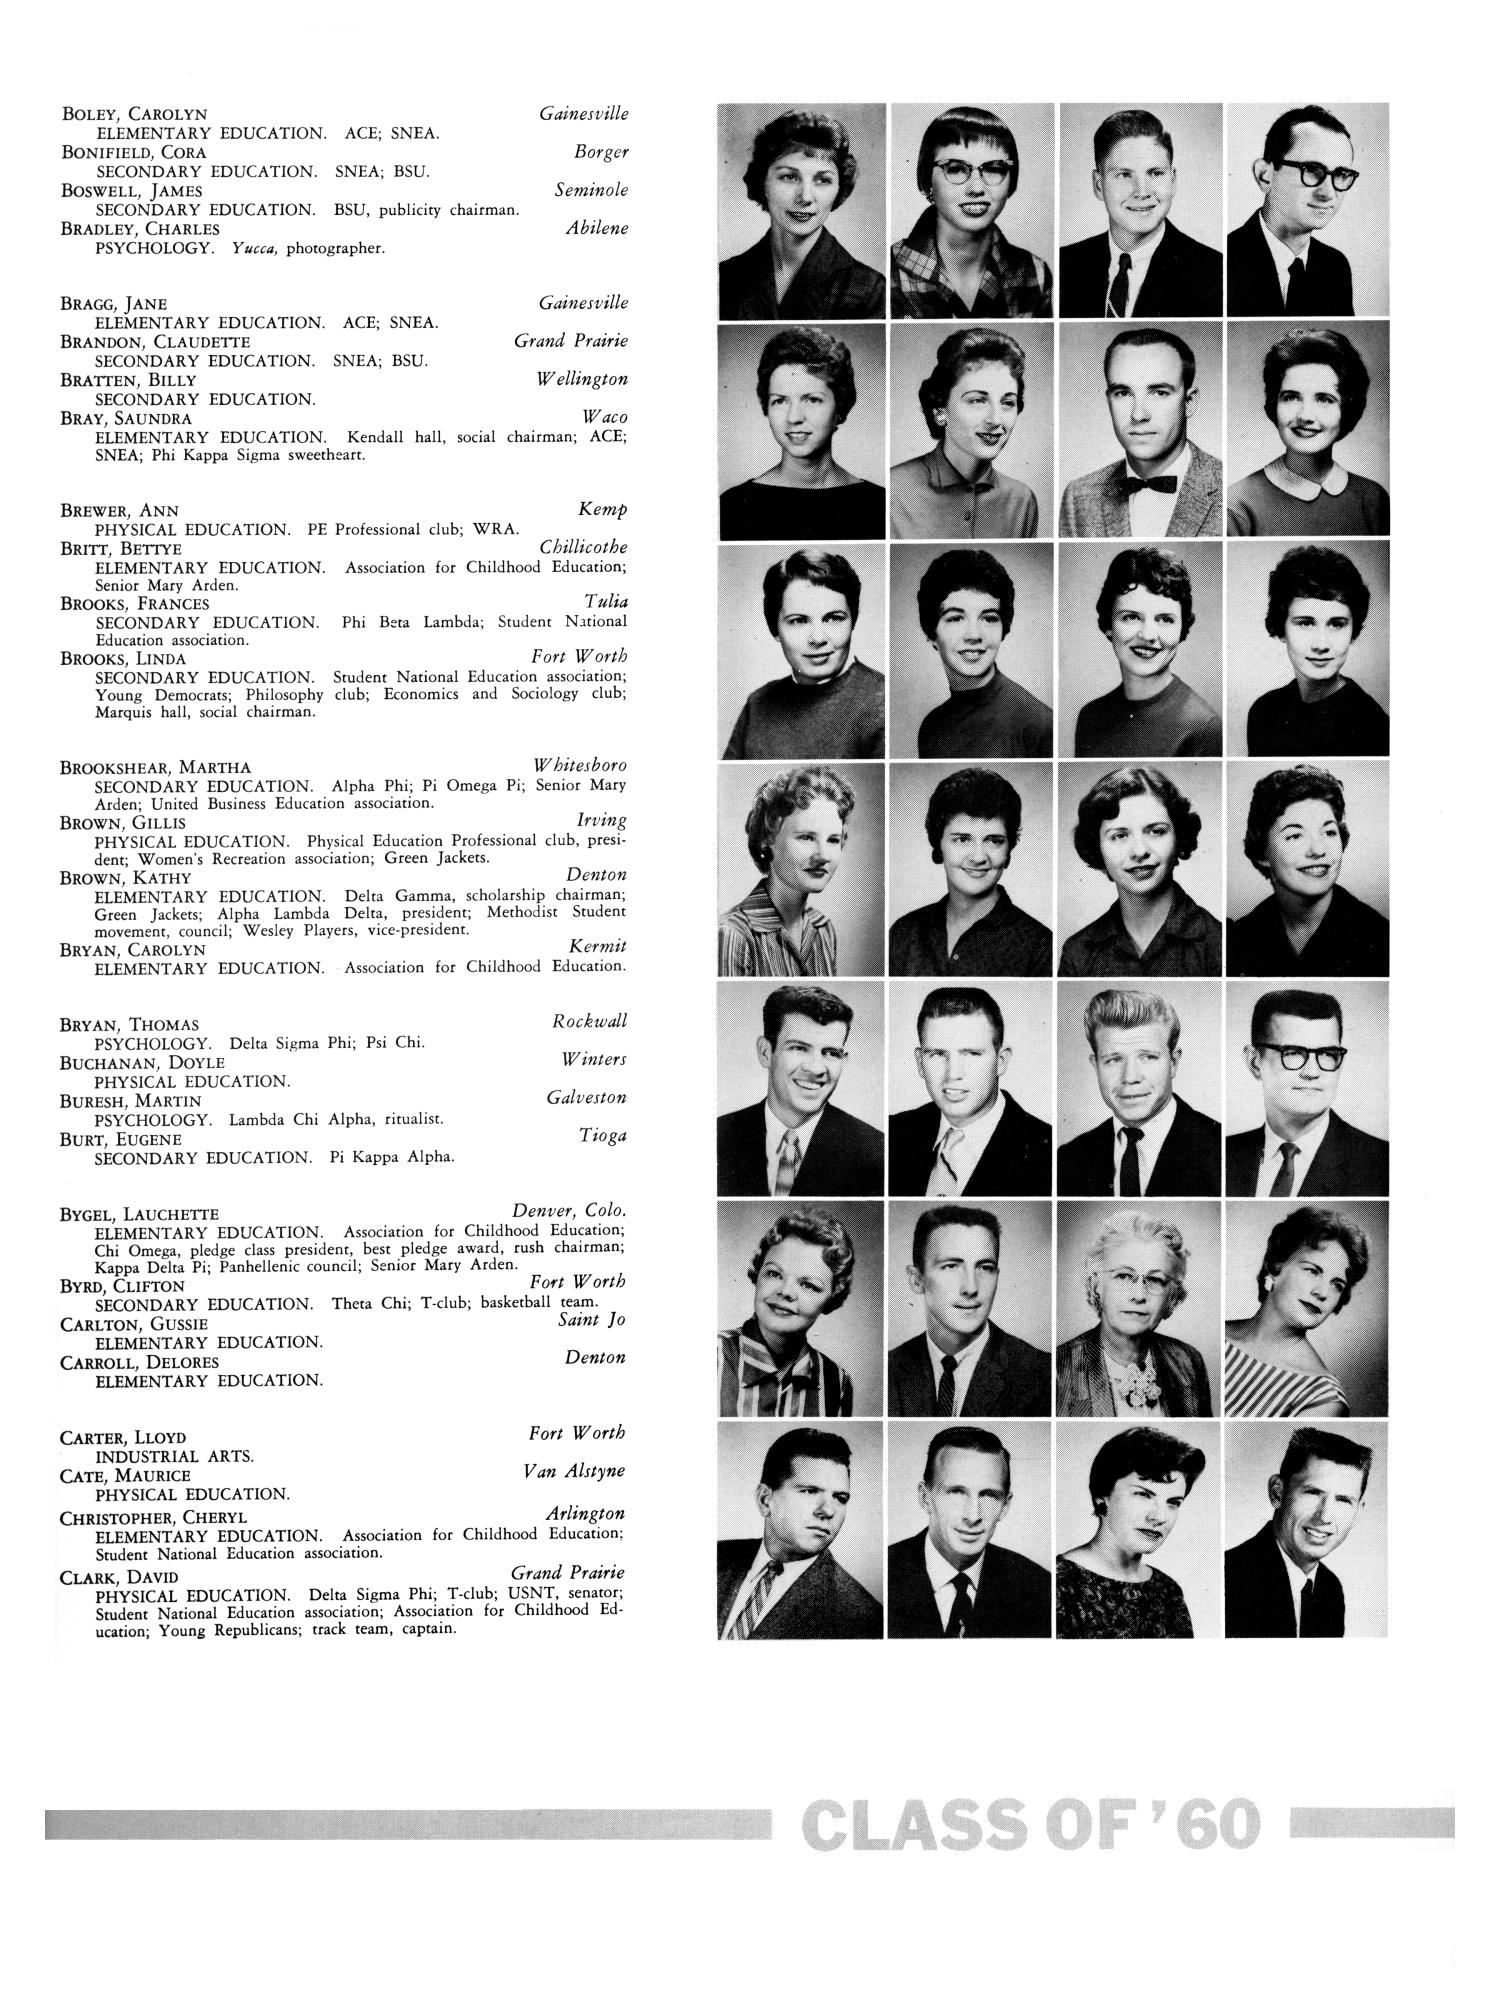 The Yucca, Yearbook of North Texas State College, 1960 - Page 265